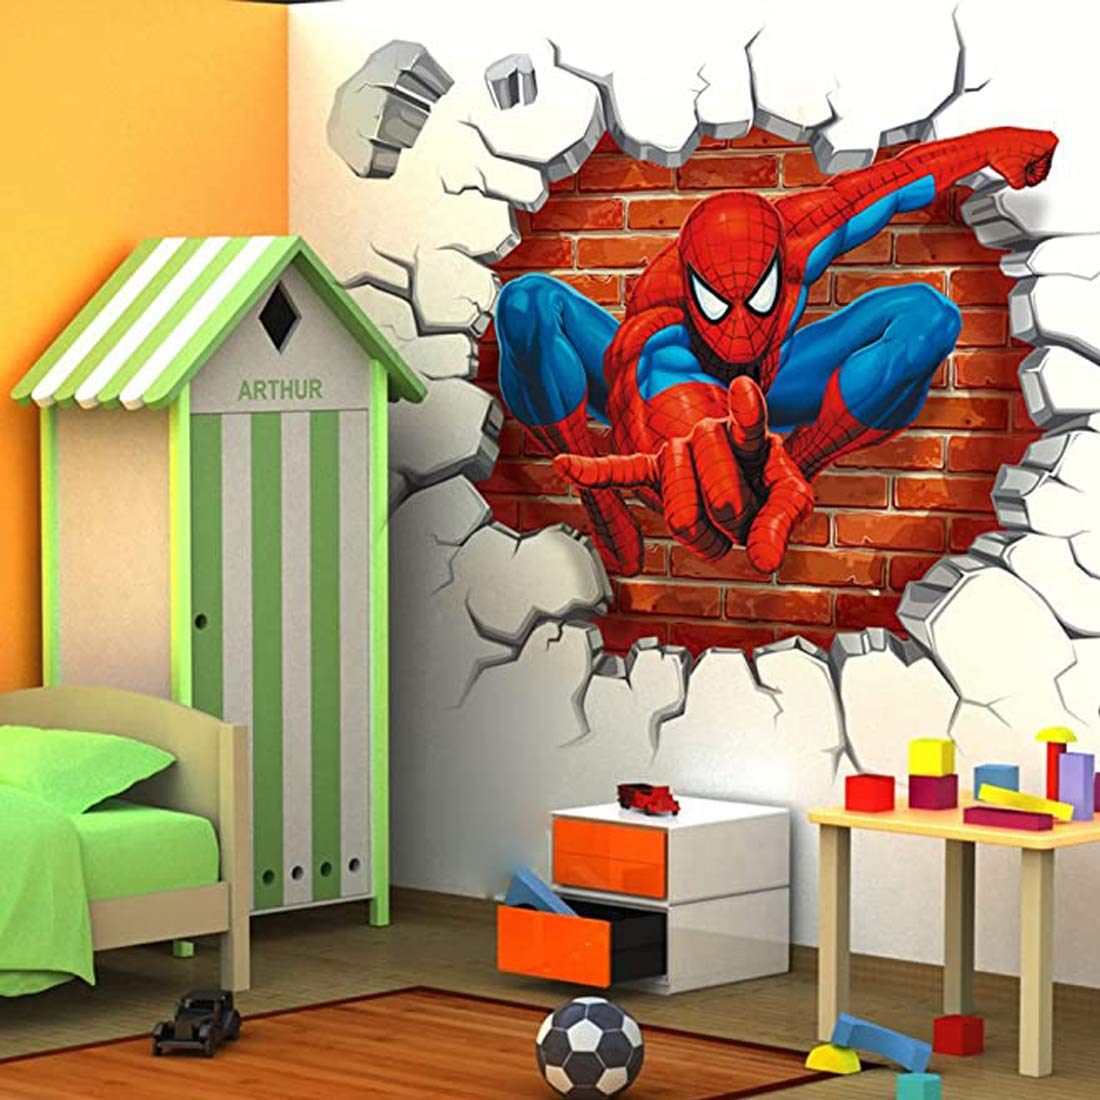 Buy Wallgenics 3d Cartoon Spiderman Wall Poster Wallpaper Wall Sticker Home Decor Stickers For Bedrooms Living Room Hall Kids Room Play Room Online At Low Prices In India Amazon In